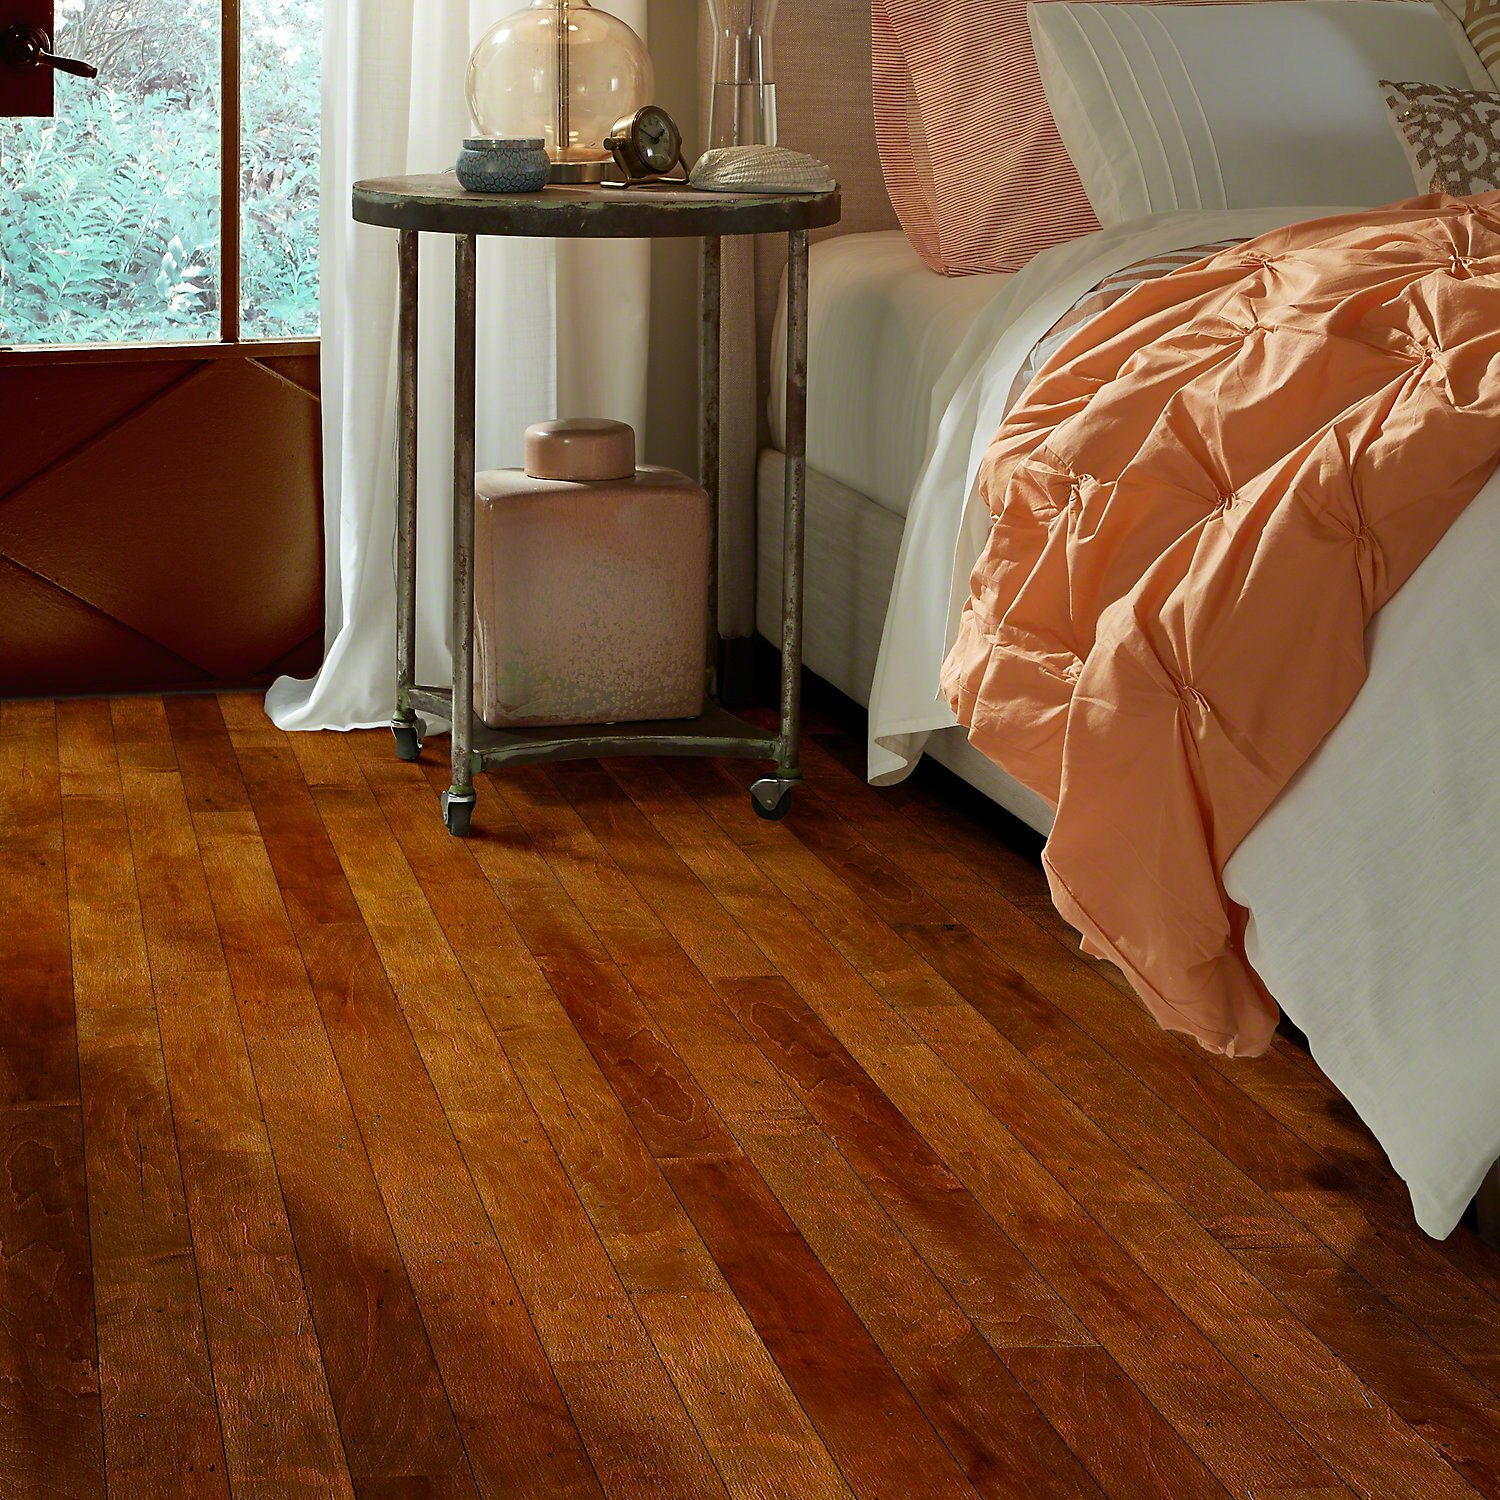 Shaw Floors Mobile 3 Engineered Maple Hardwood Flooring in Laurel